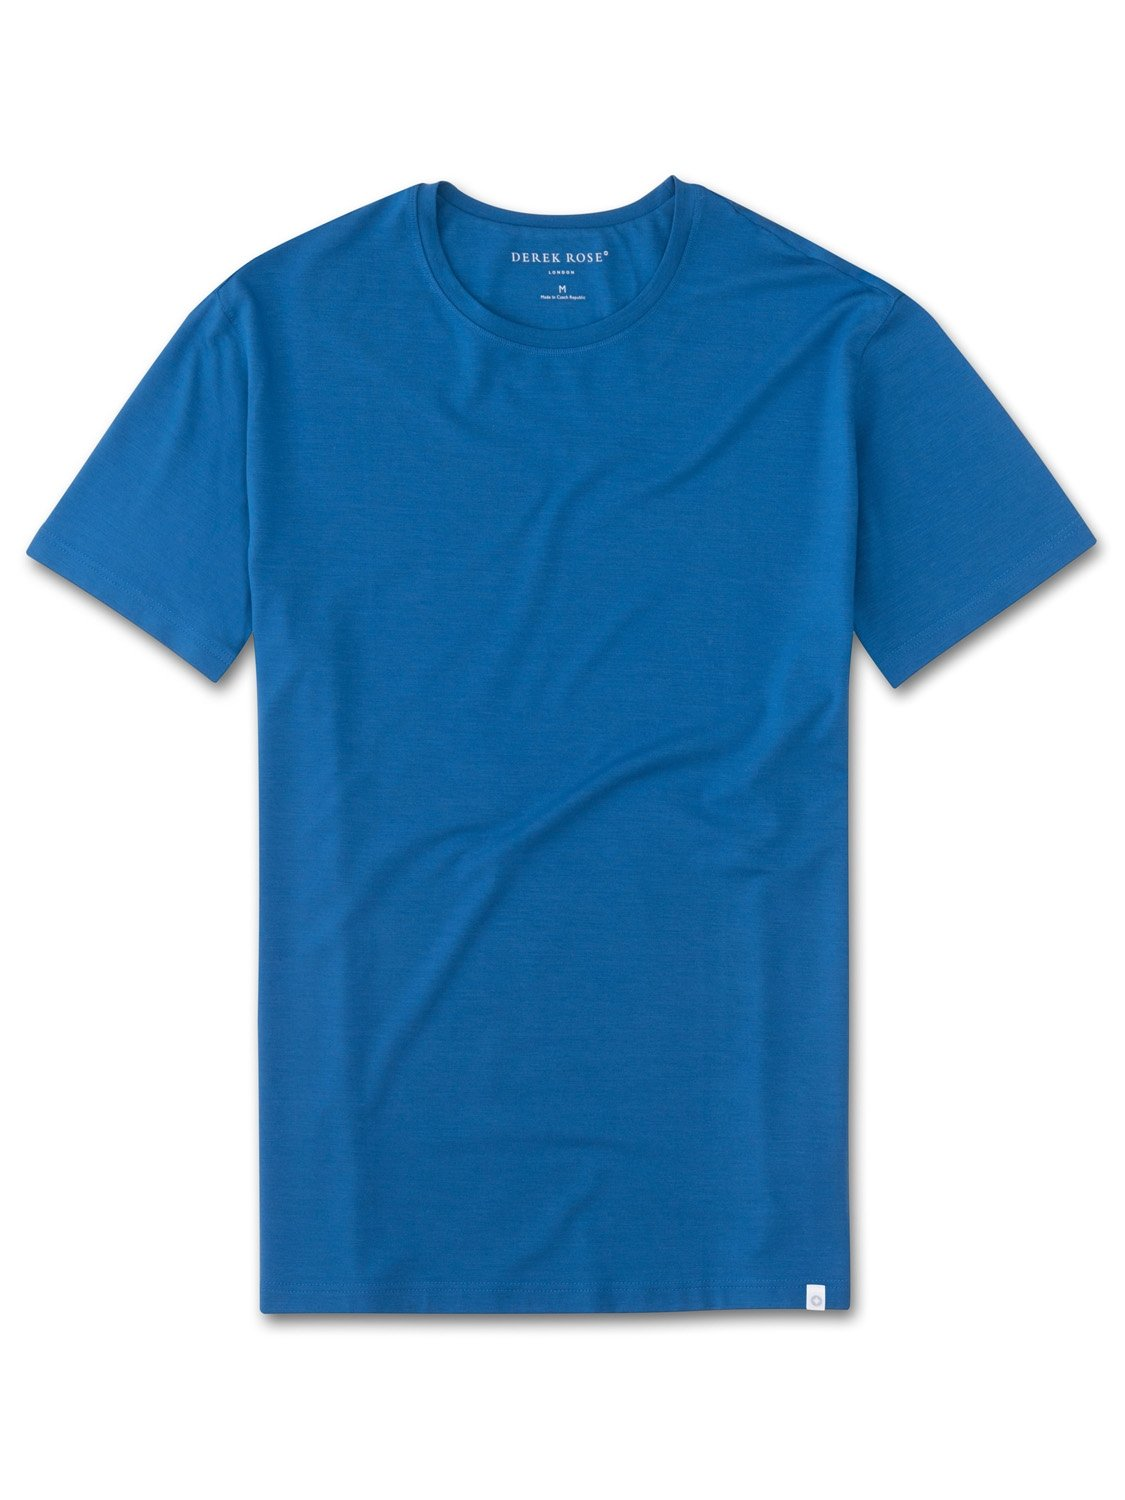 Men's Short Sleeve T-Shirt Basel 5 Micro Modal Stretch Blue